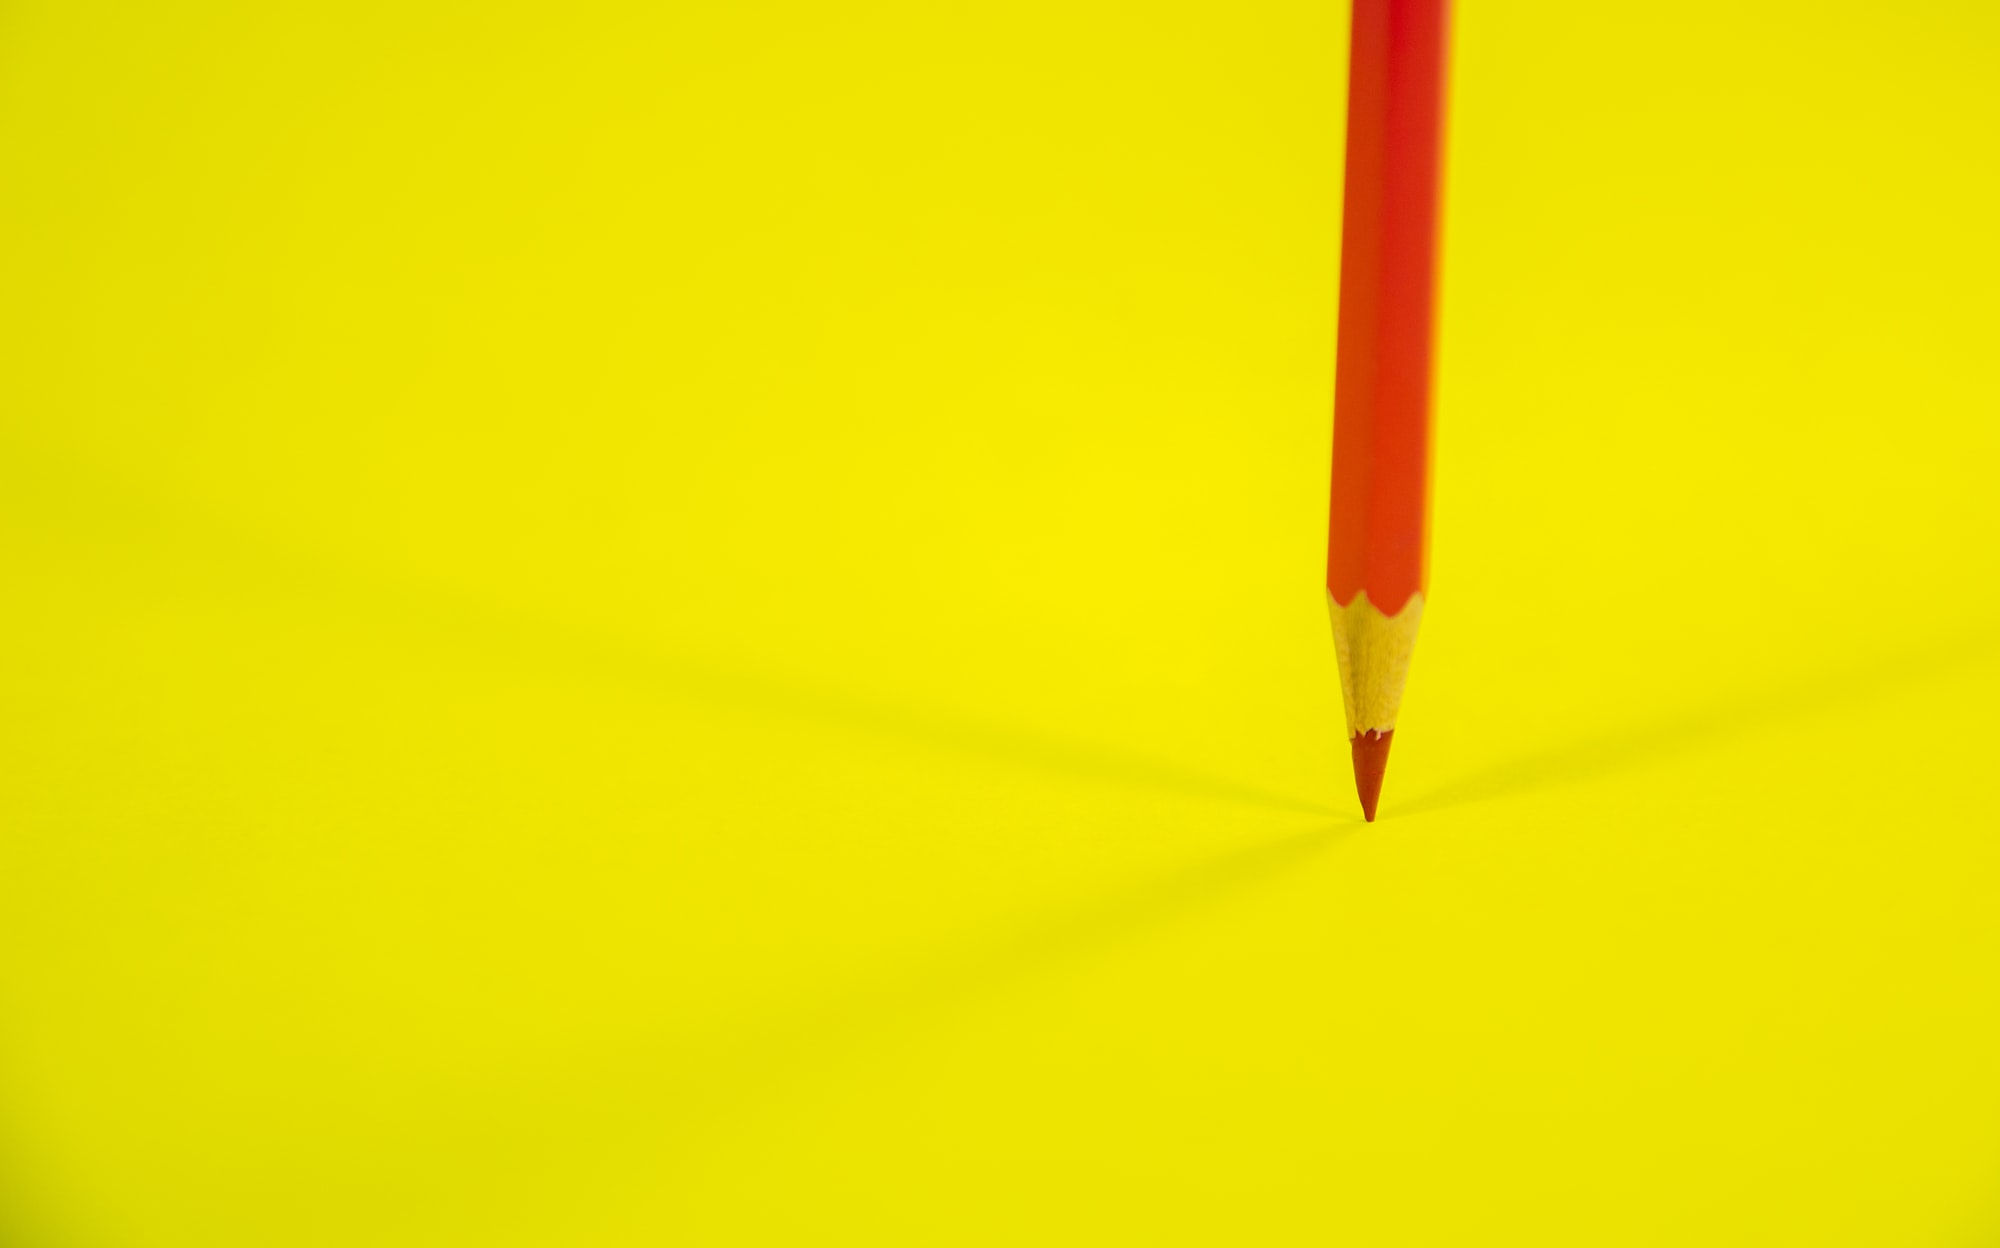 Red Color Pencil on Yellow Background